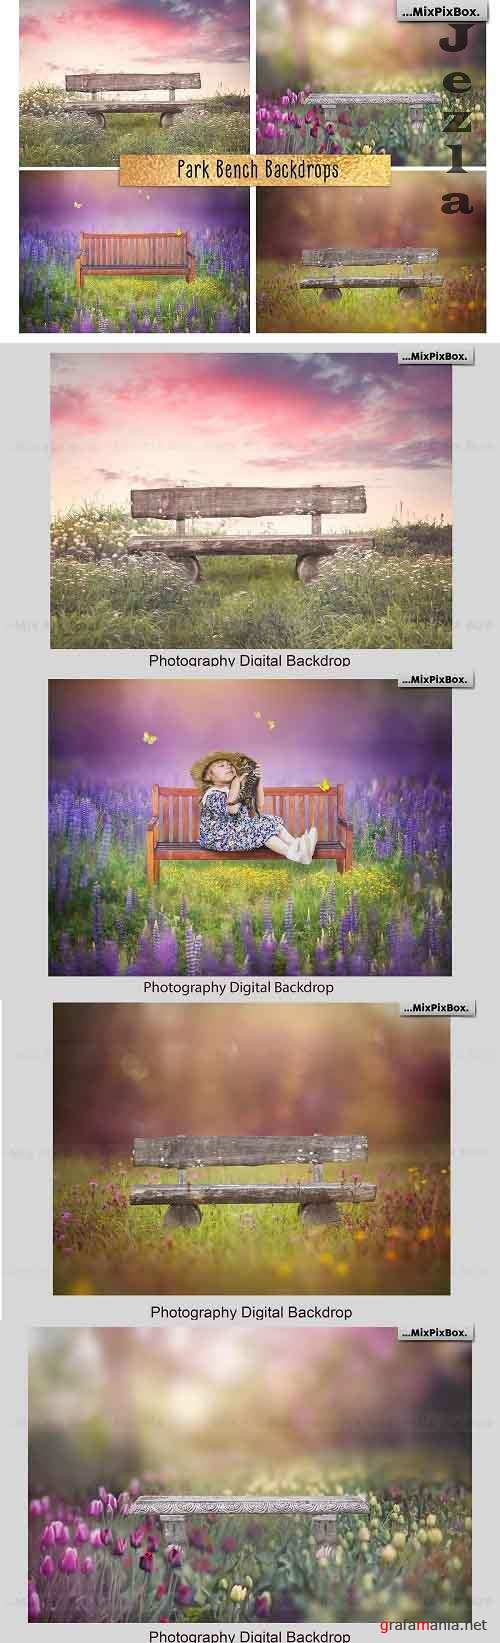 Park Bench Backdrops - 5013302